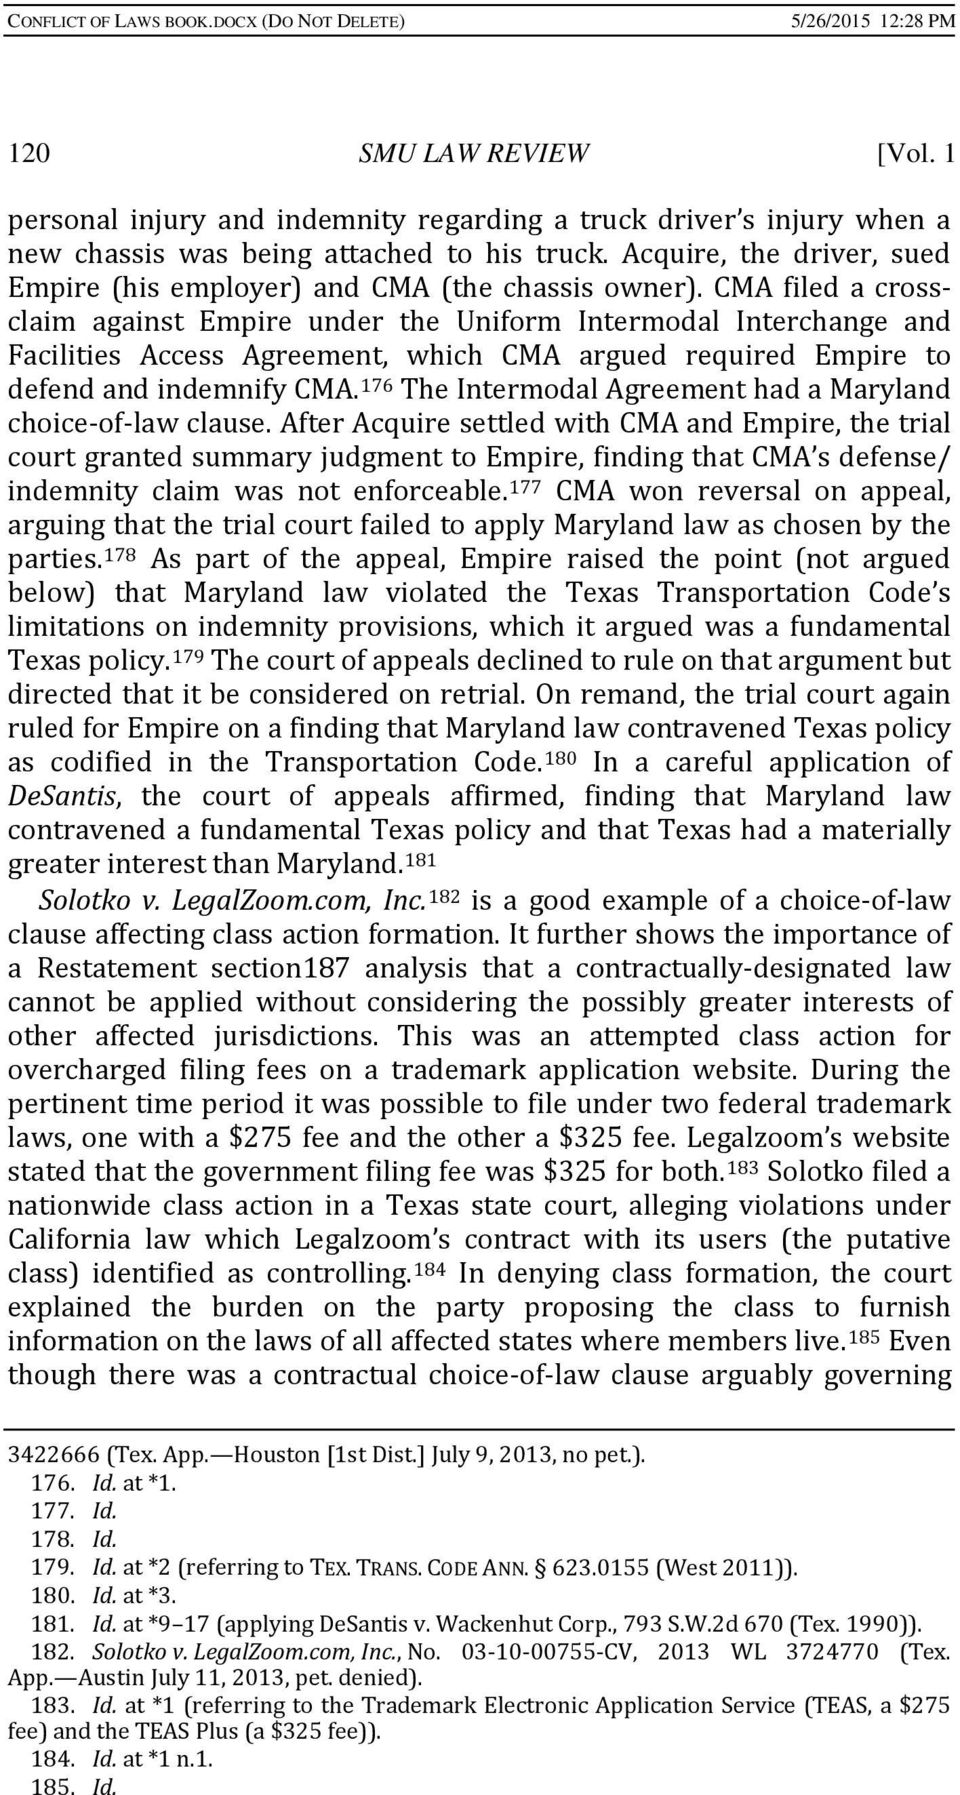 CMA filed a crossclaim against Empire under the Uniform Intermodal Interchange and Facilities Access Agreement, which CMA argued required Empire to defend and indemnify CMA.